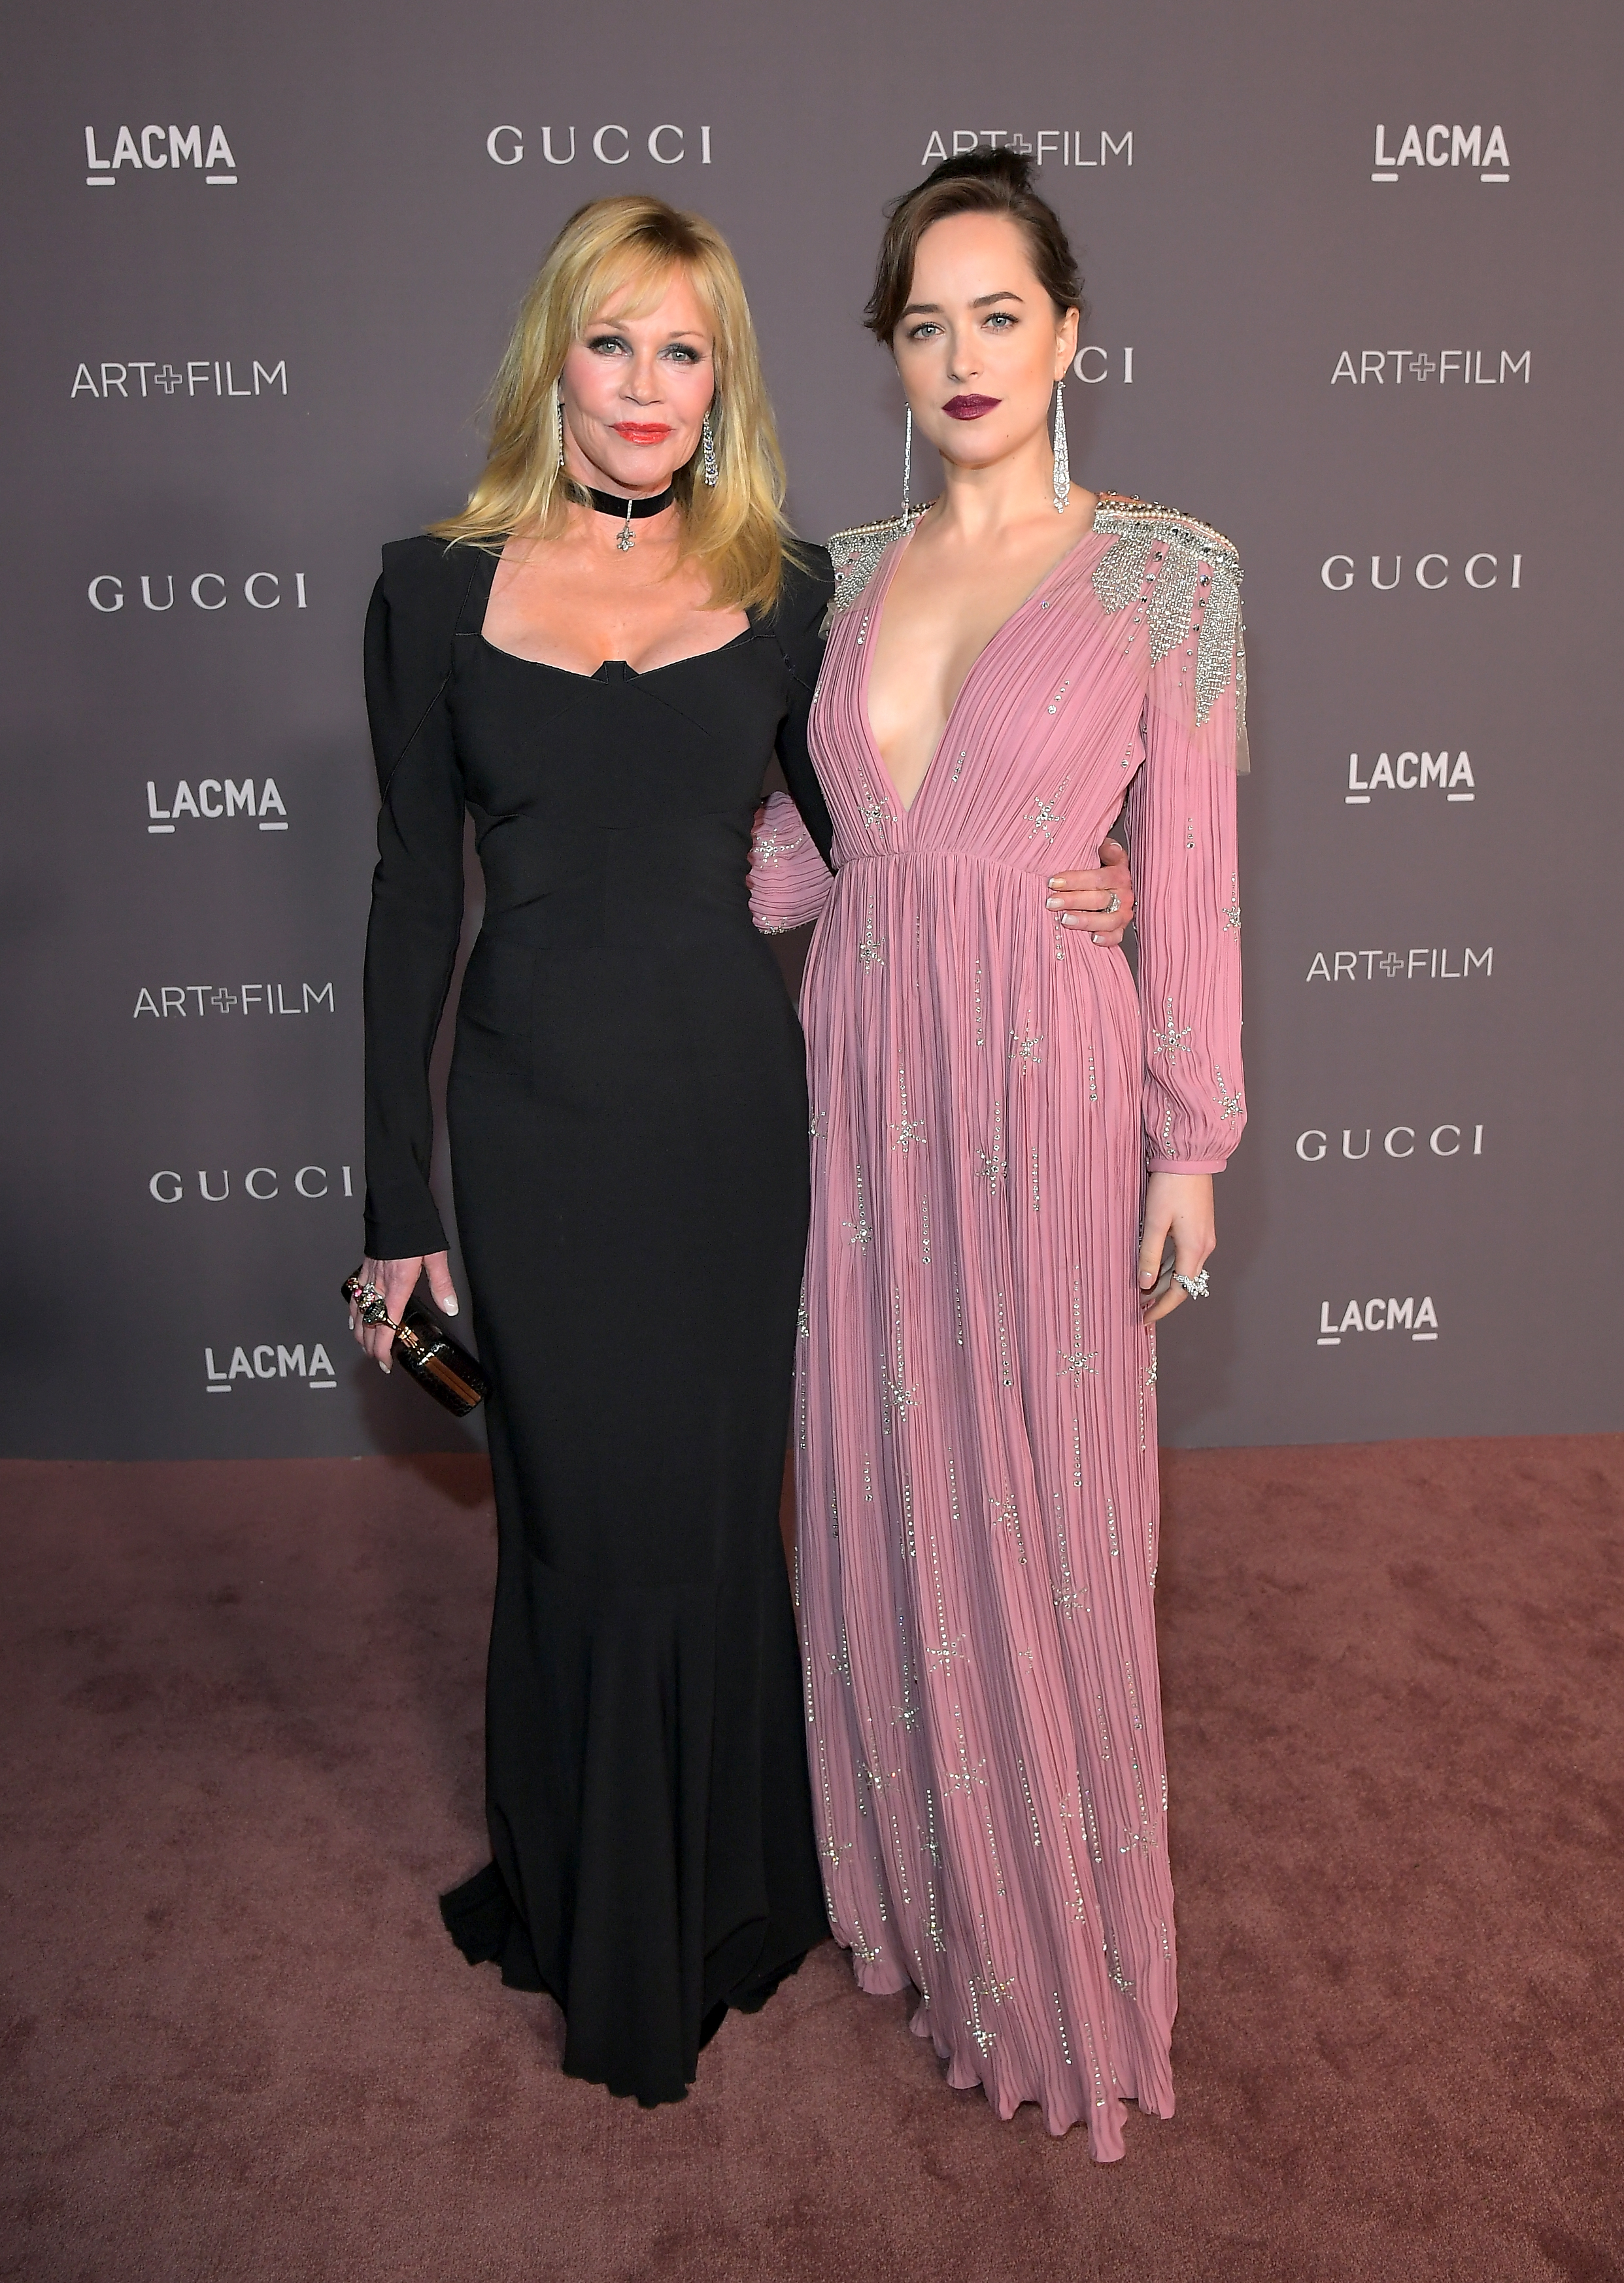 LOS ANGELES, CA - NOVEMBER 04: Actors Melanie Griffith (L) and Dakota Johnson, wearing Gucci, attend the 2017 LACMA Art + Film Gala Honoring Mark Bradford And George Lucas at LACMA on November 4, 2017 in Los Angeles, California. (Photo by Charley Gallay/Getty Images for LACMA)